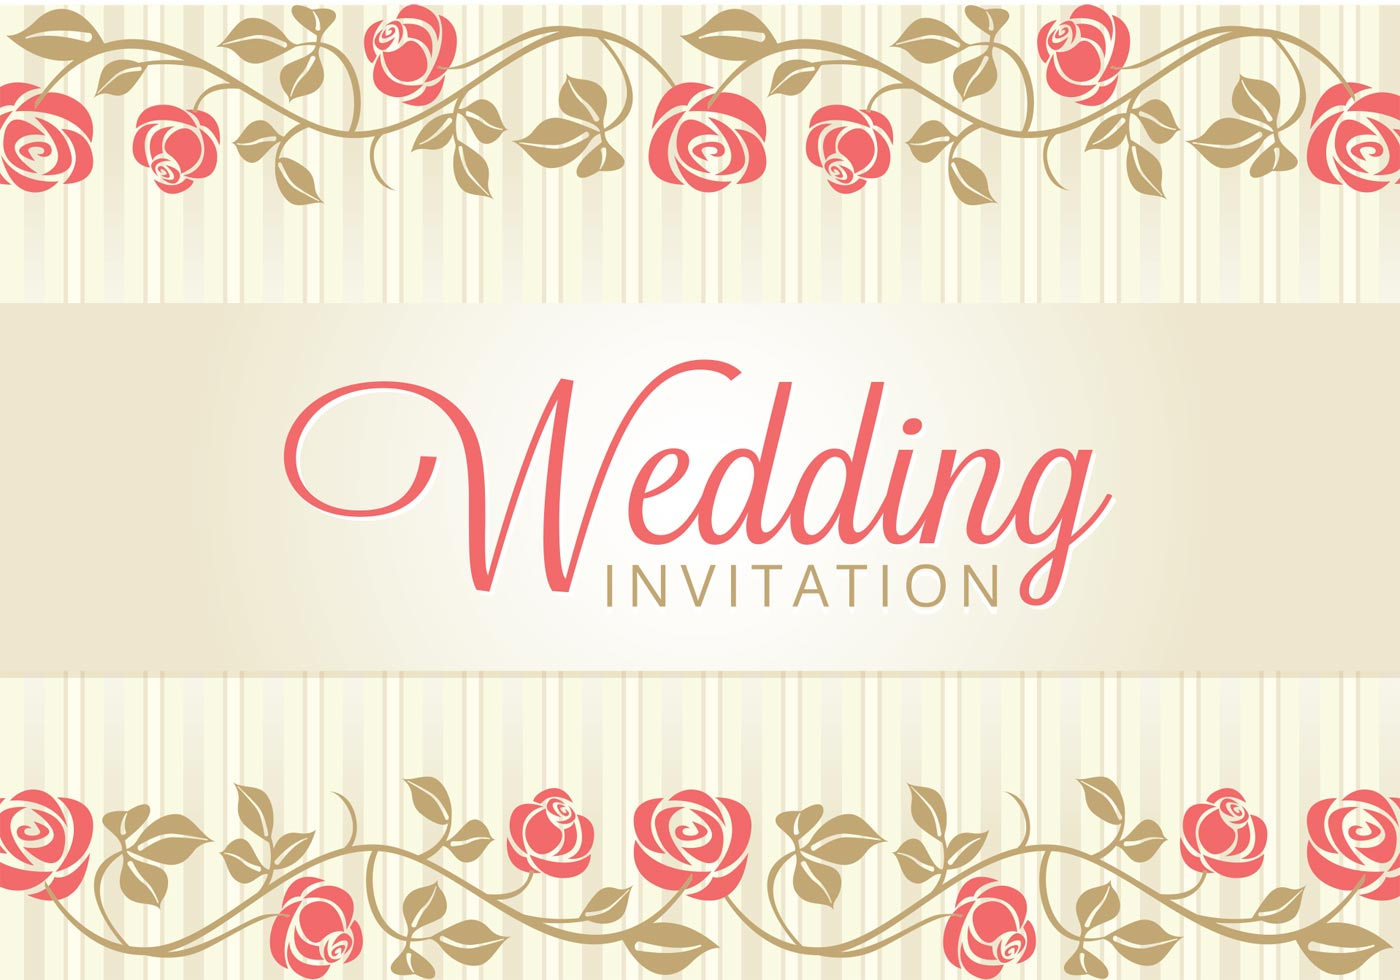 invitation card design 28072 free downloads